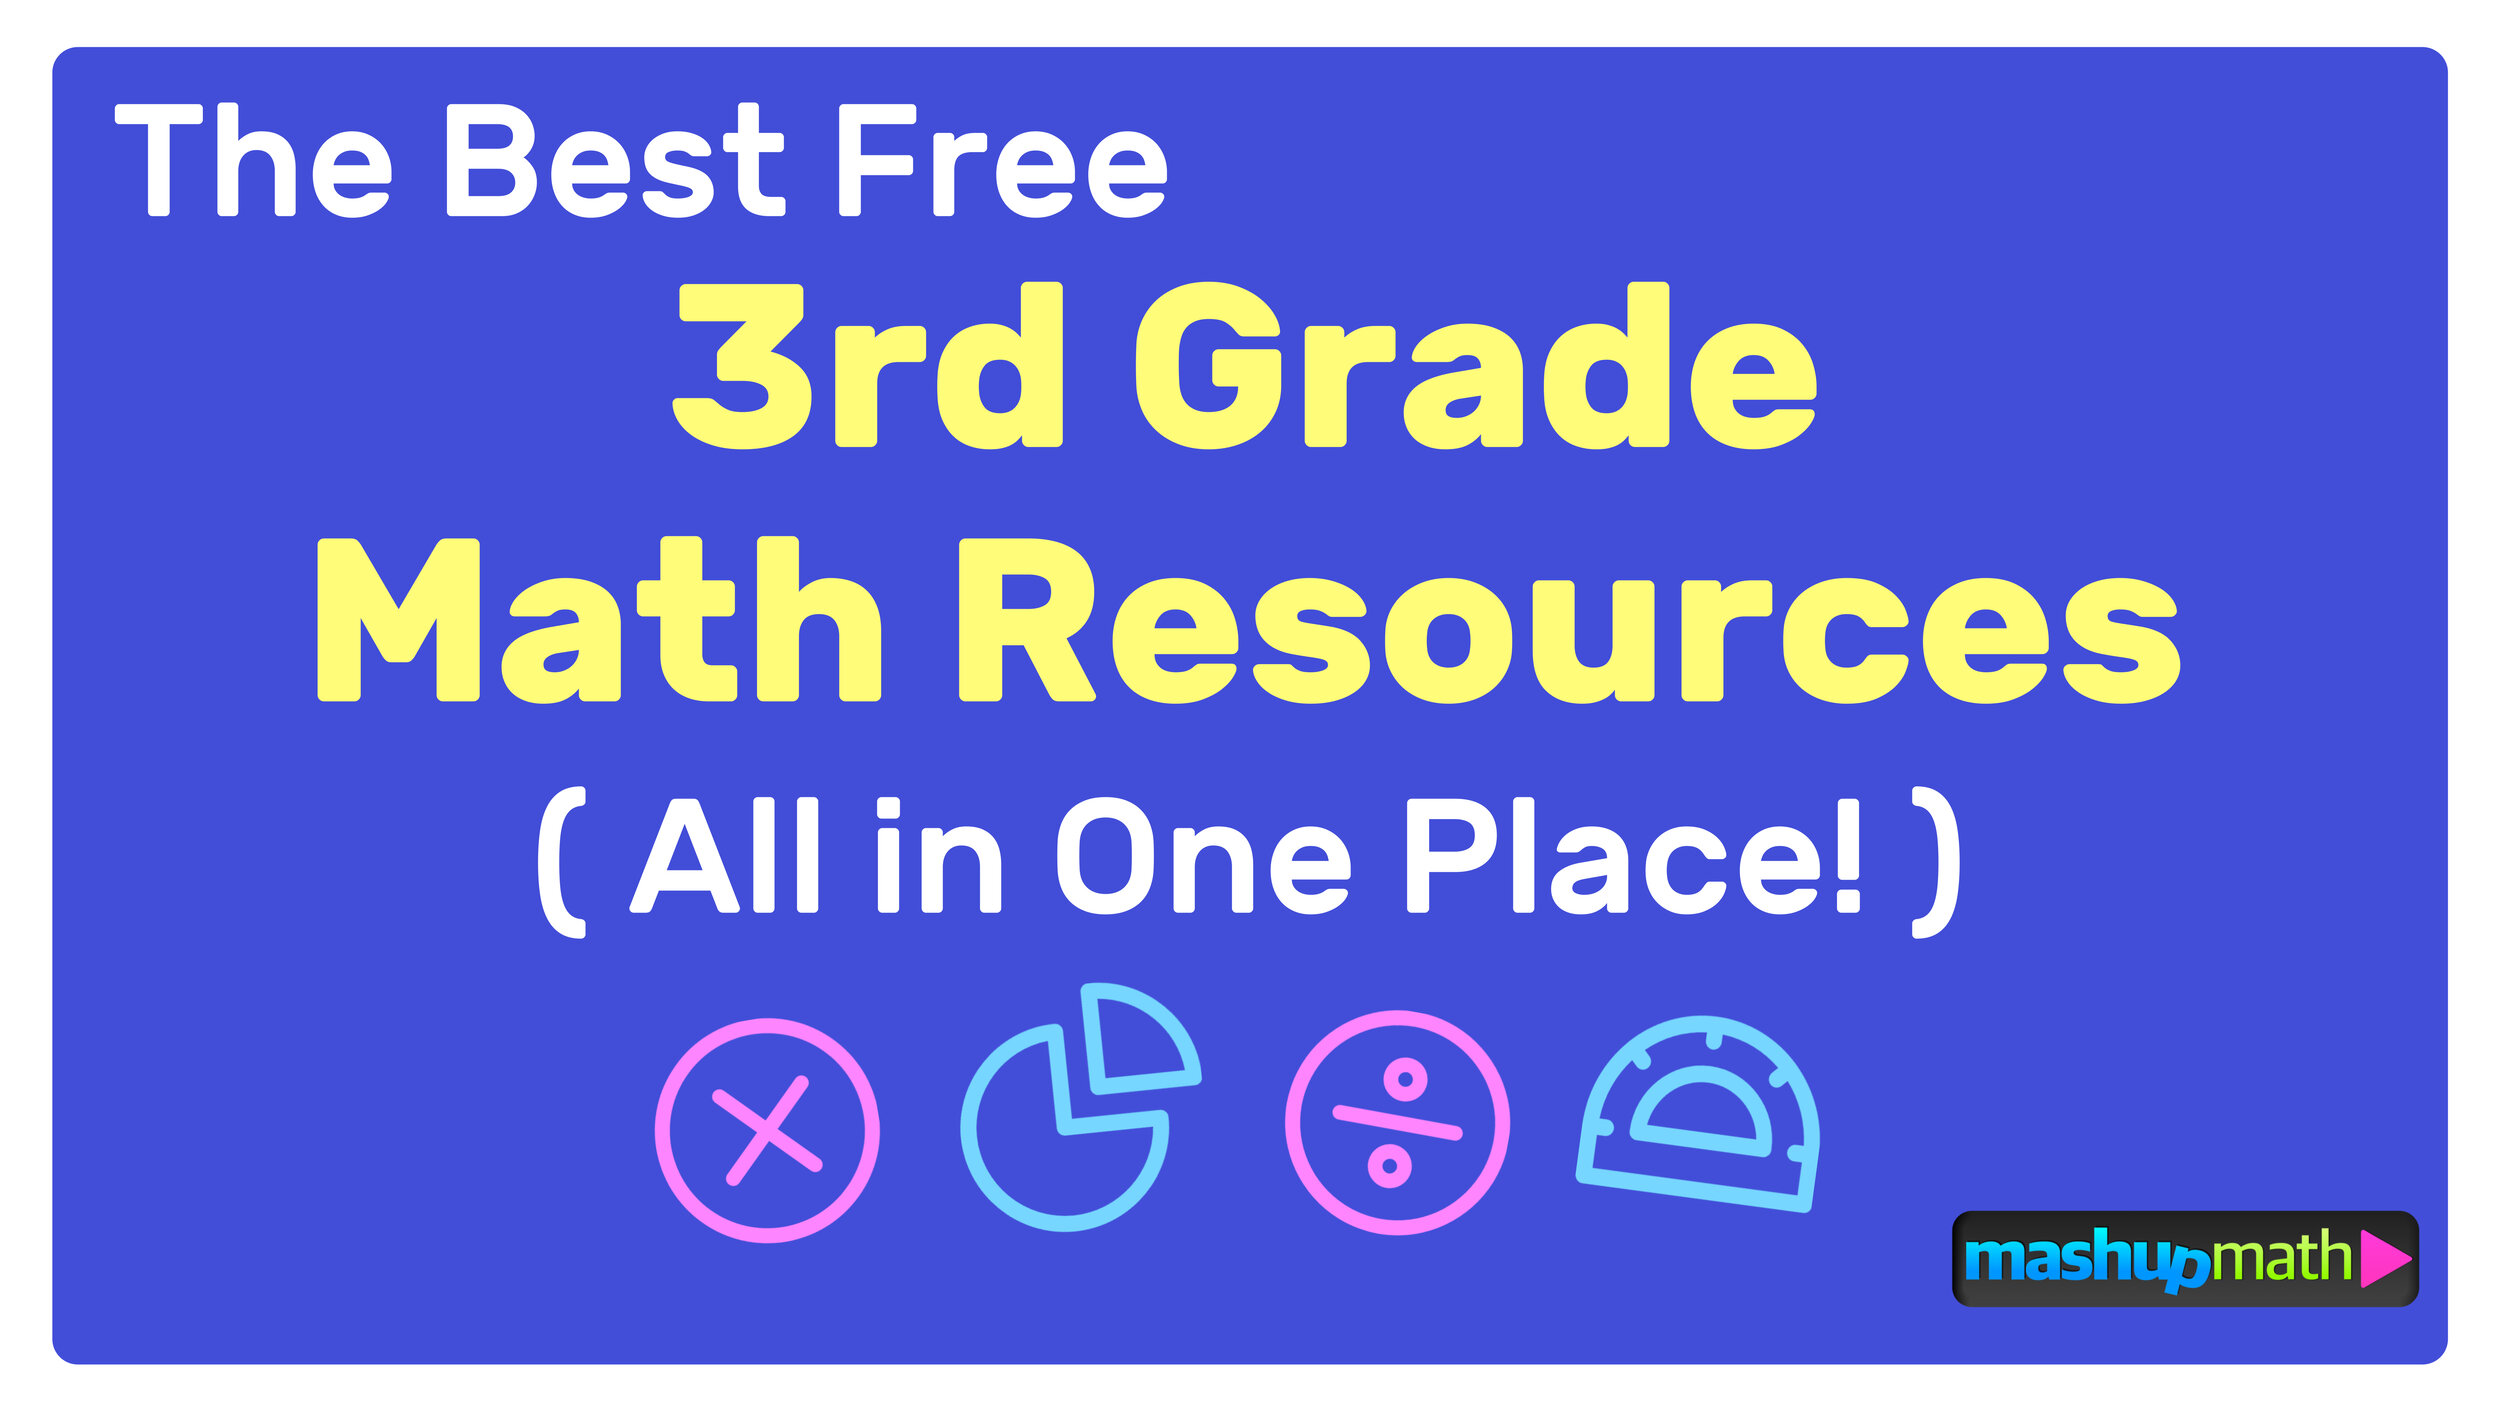 The Best Free 3rd Grade Math Resources: Complete List! — Mashup Math